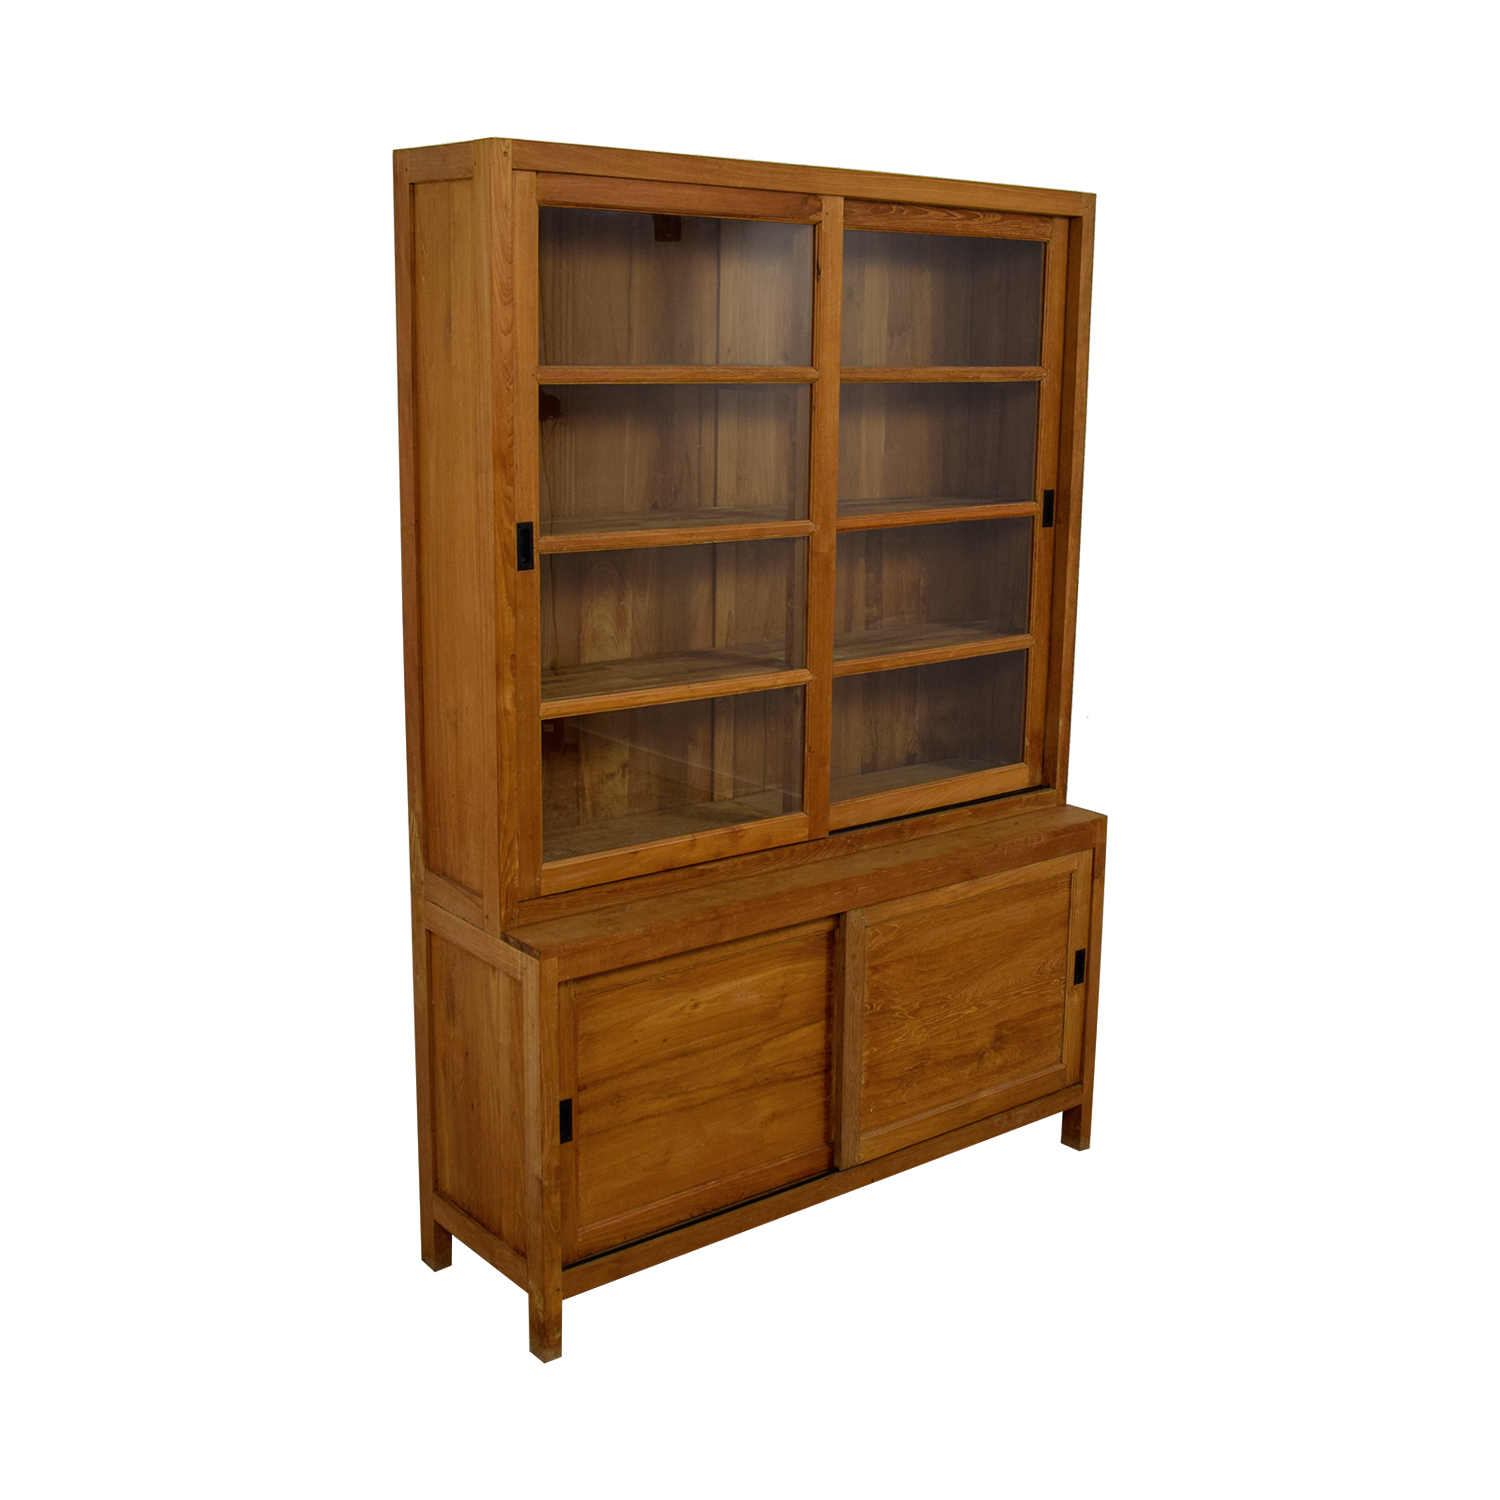 shop ABC Carpet & Home ABC Carpet & Home Wood and Glass Cabinet online